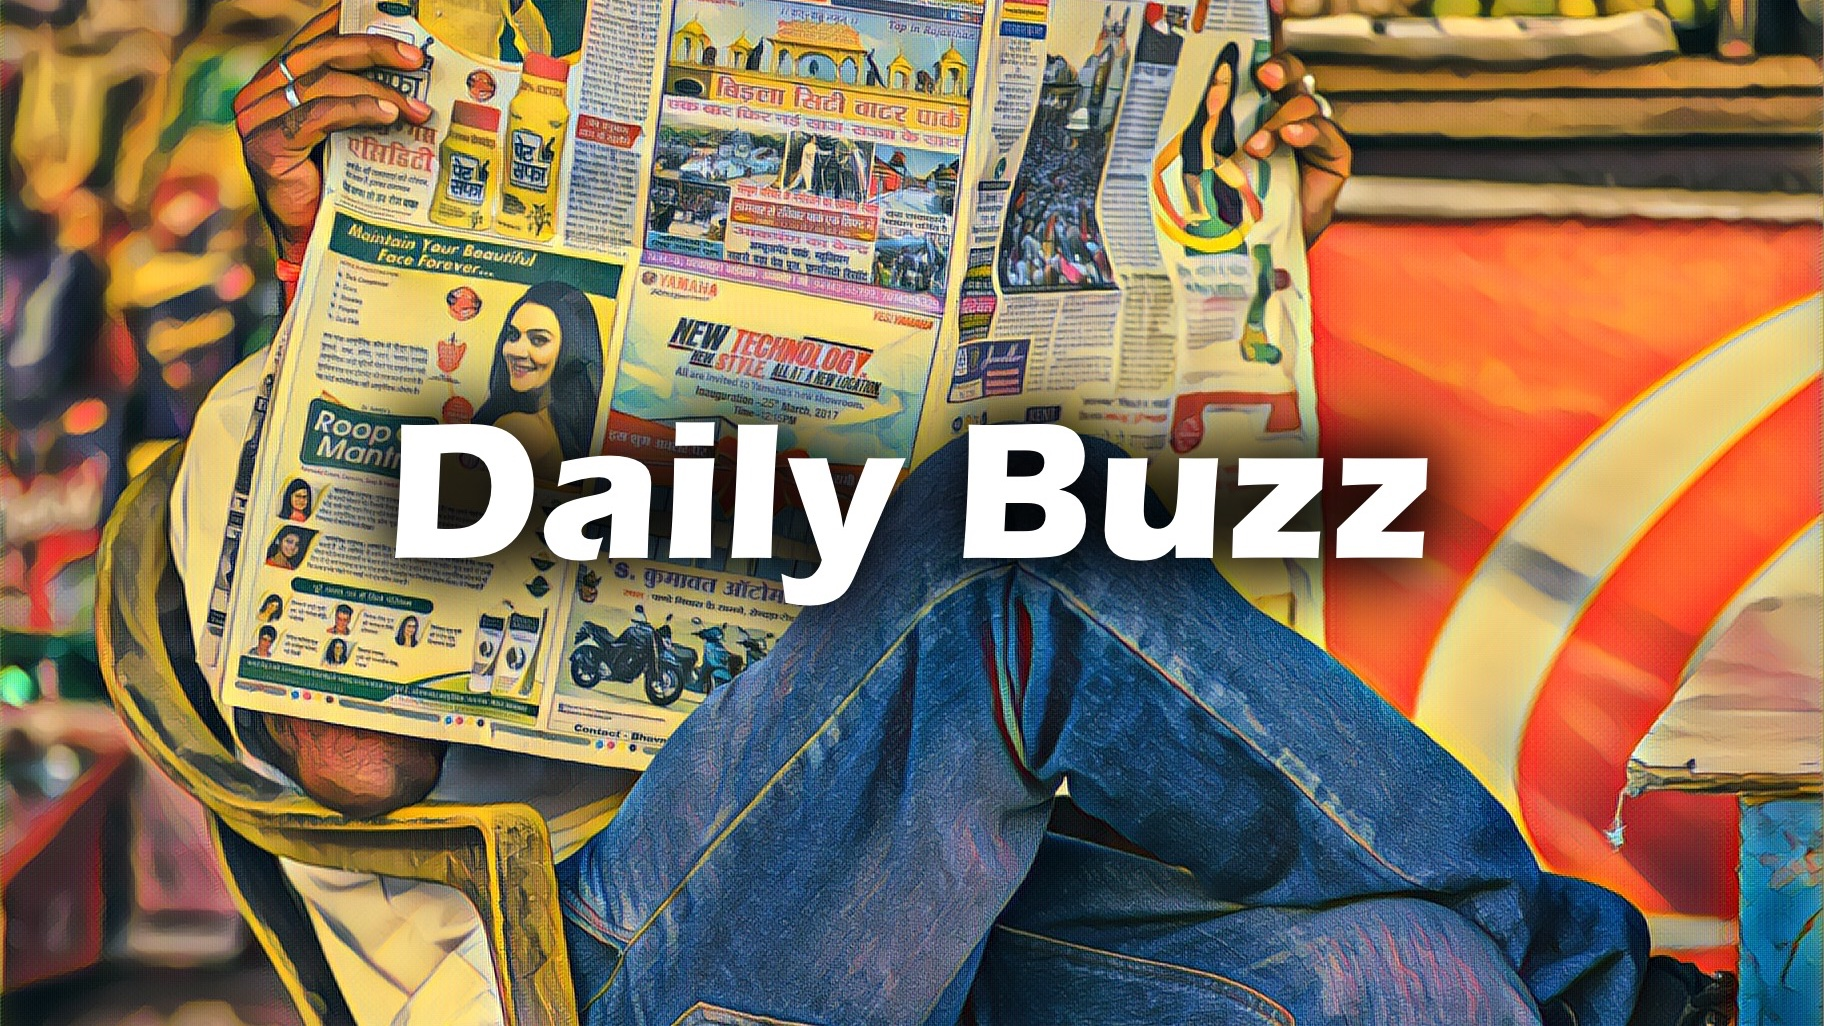 DailyBuzz Tuesday 3 July 2018